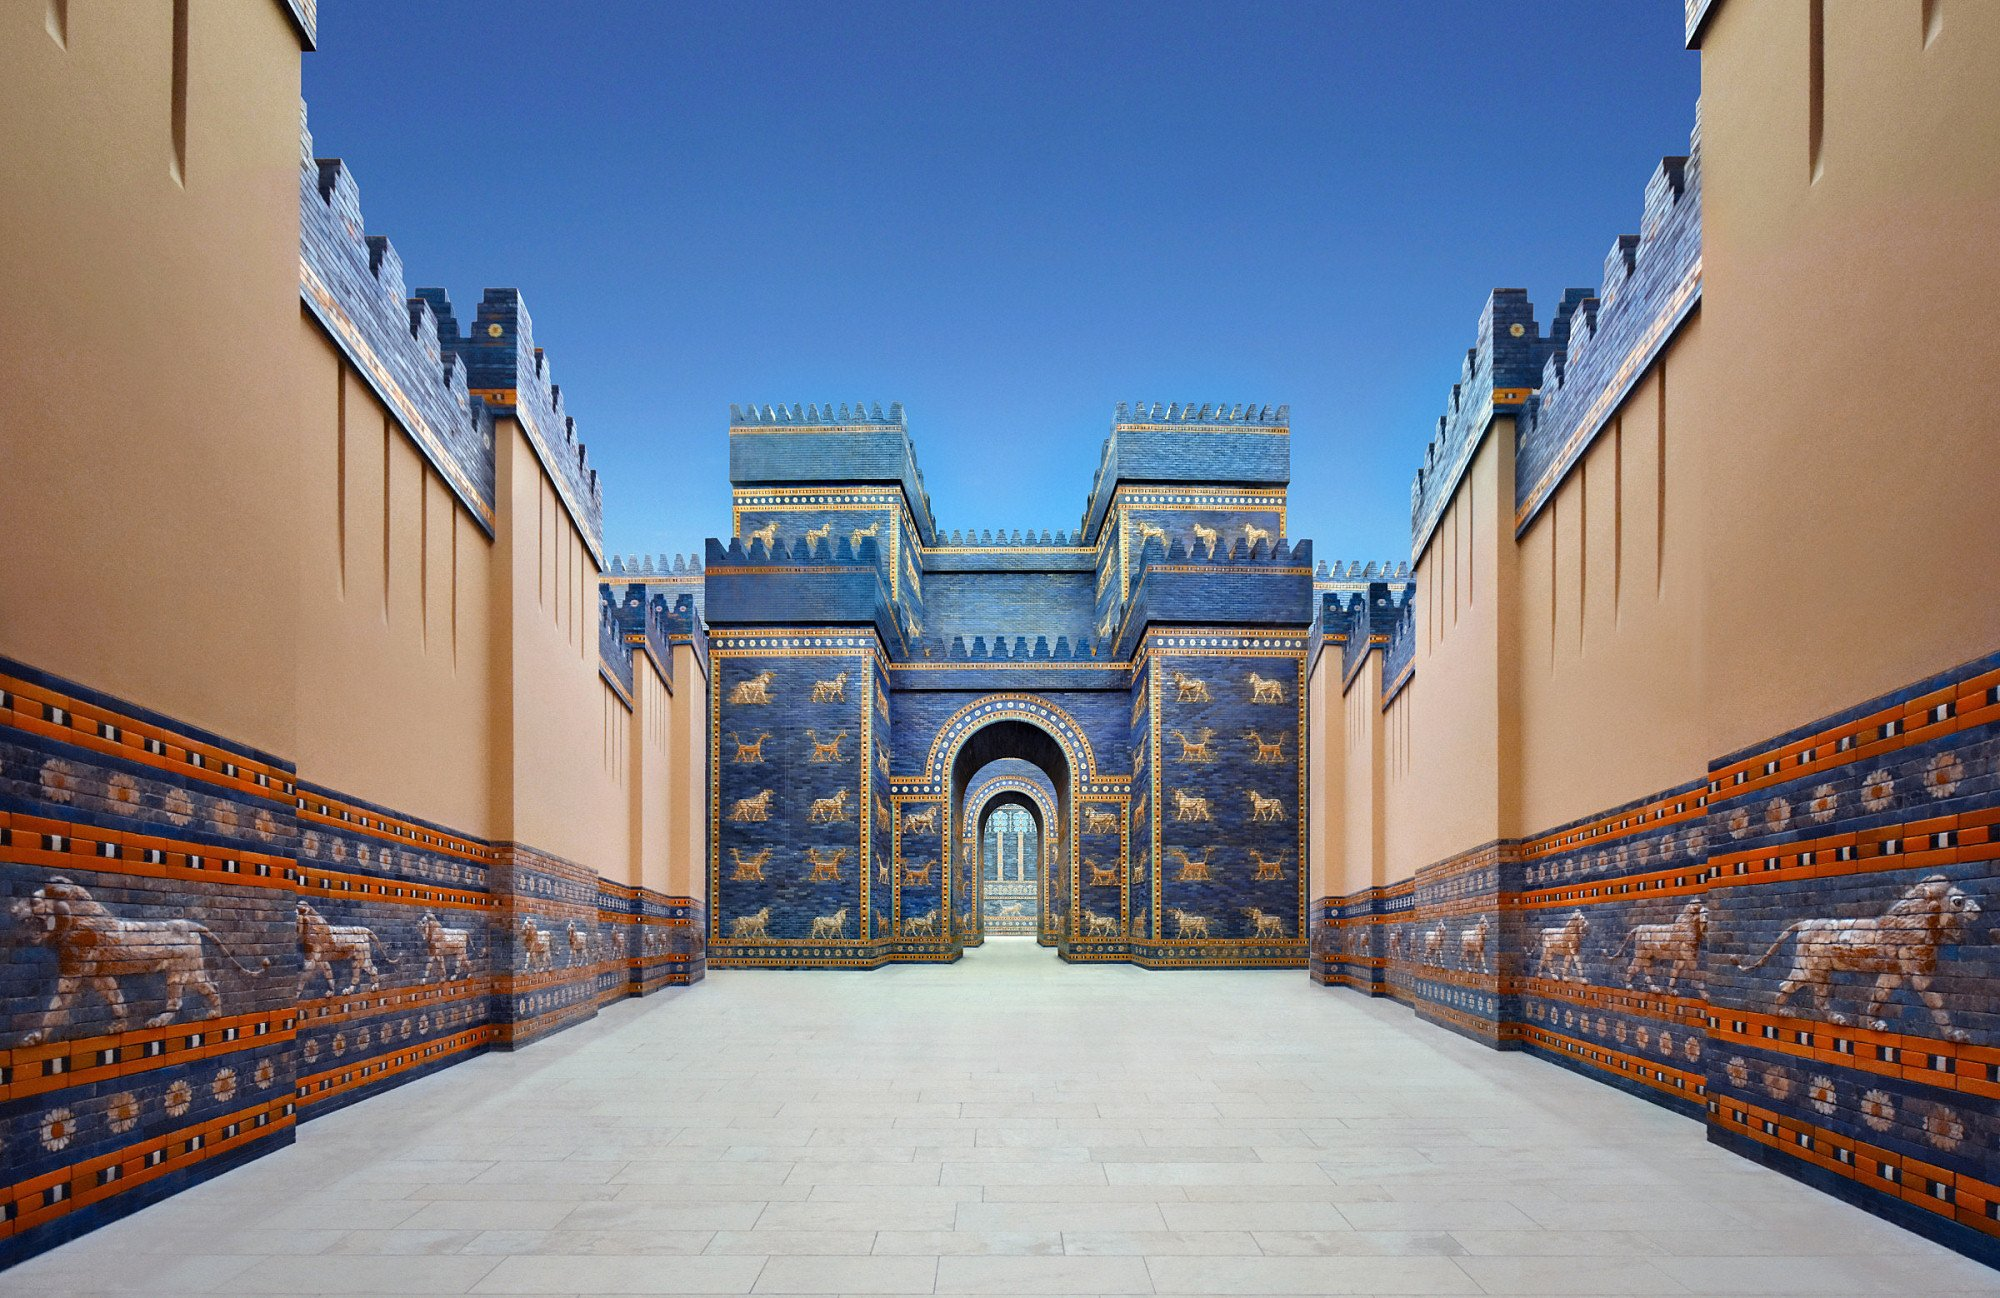 babylon, collage, museum, city, architecture, ancient, ishtar, marduk, nabuchodonosor, reconstruction, gate, pergamon, Endegor